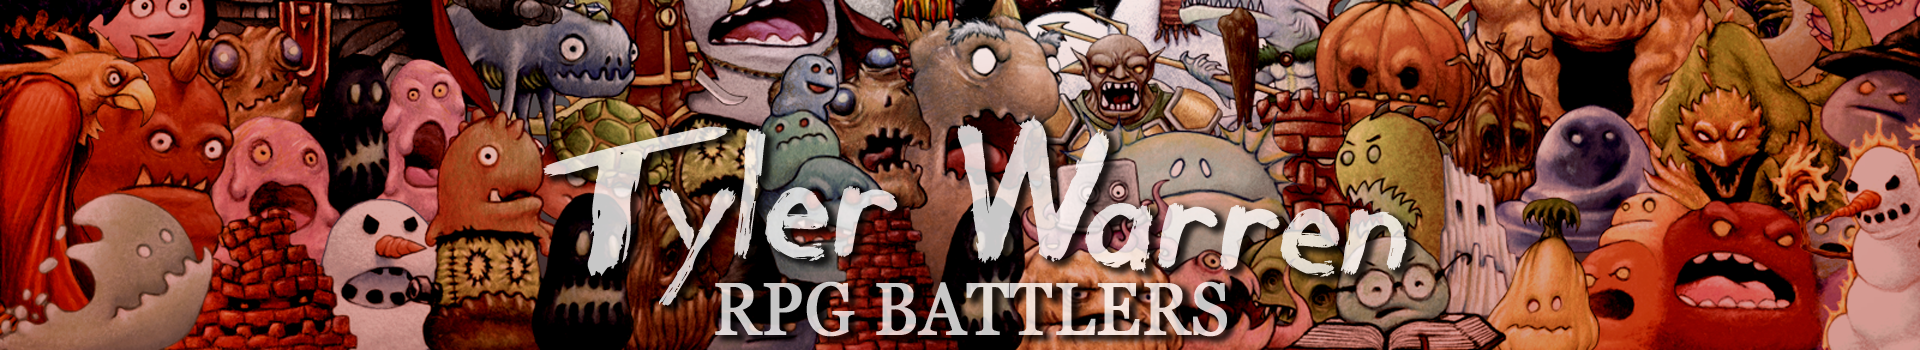 Tyler Warren RPG Battlers – 3rd 50 Monsters